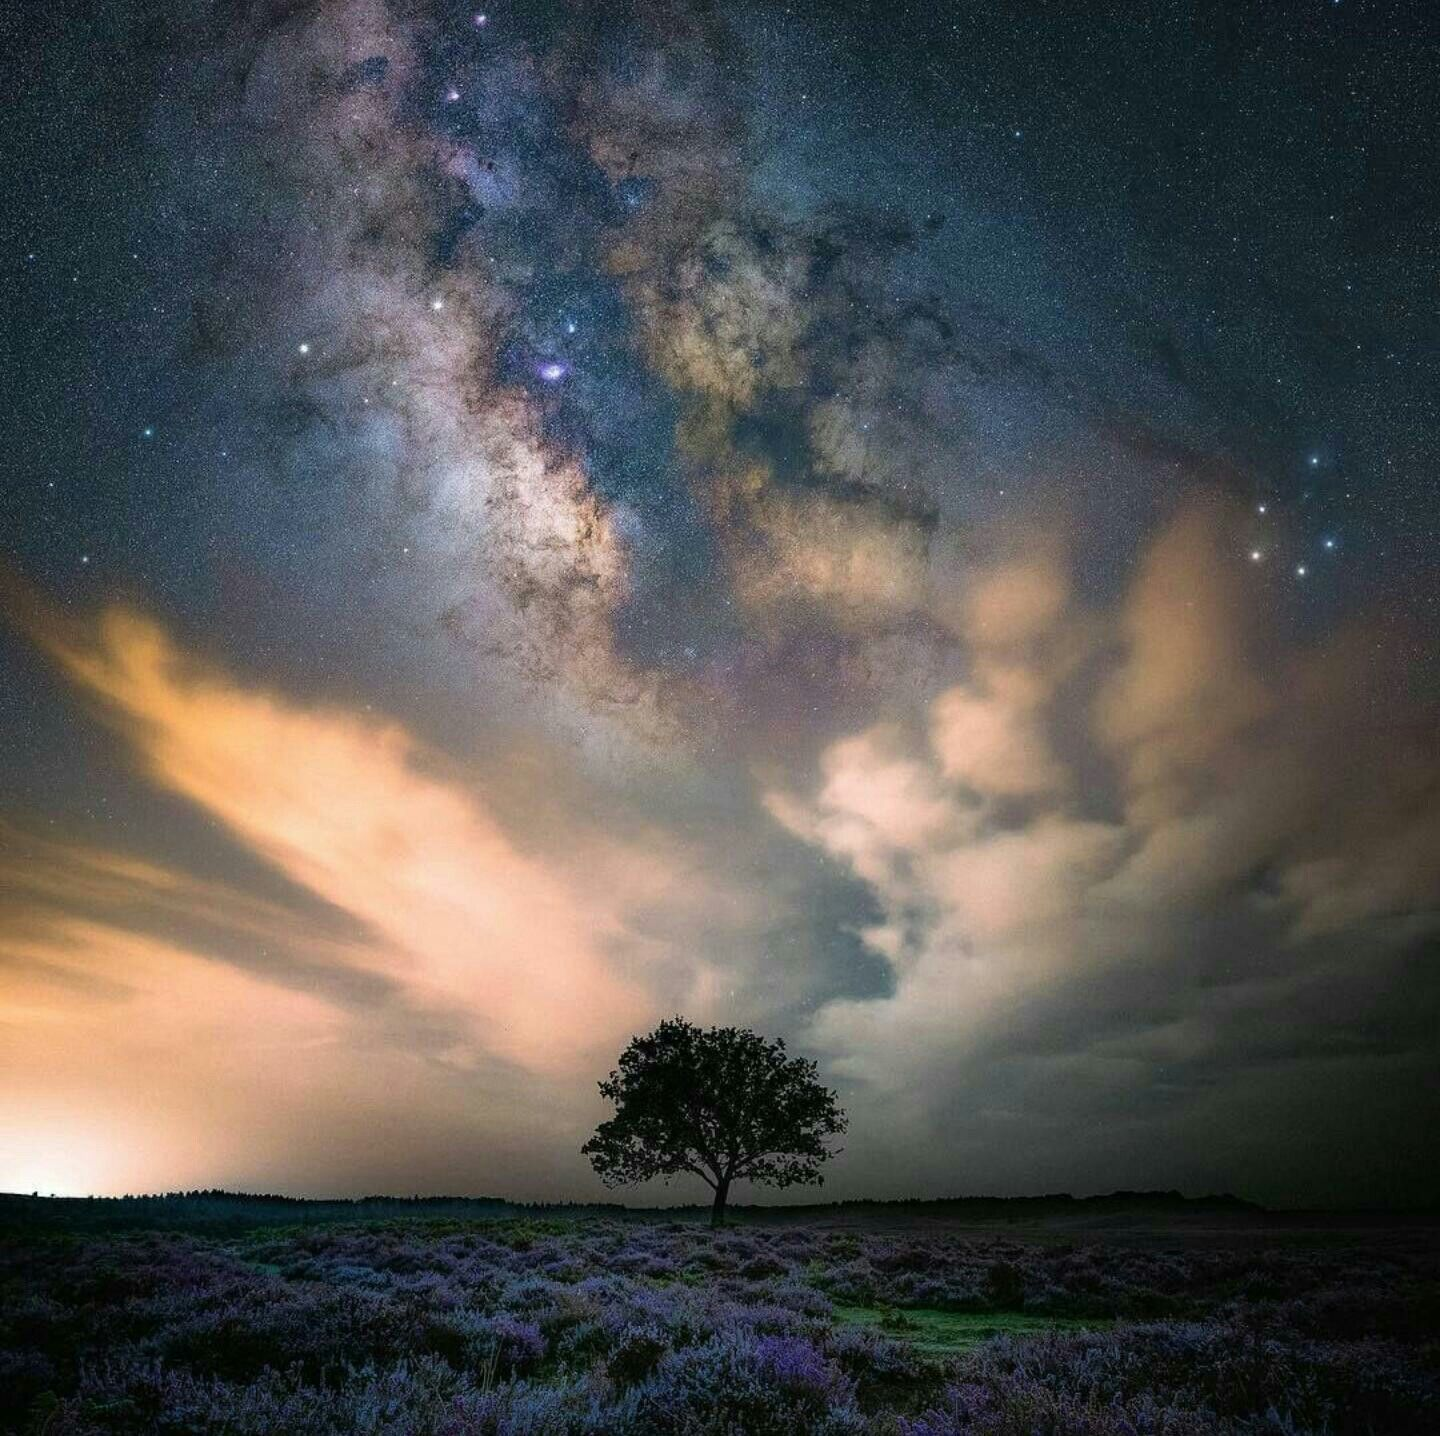 Pin By Ayesha Ansari On Amazing In 2019 Star Photography Milky Way Sky